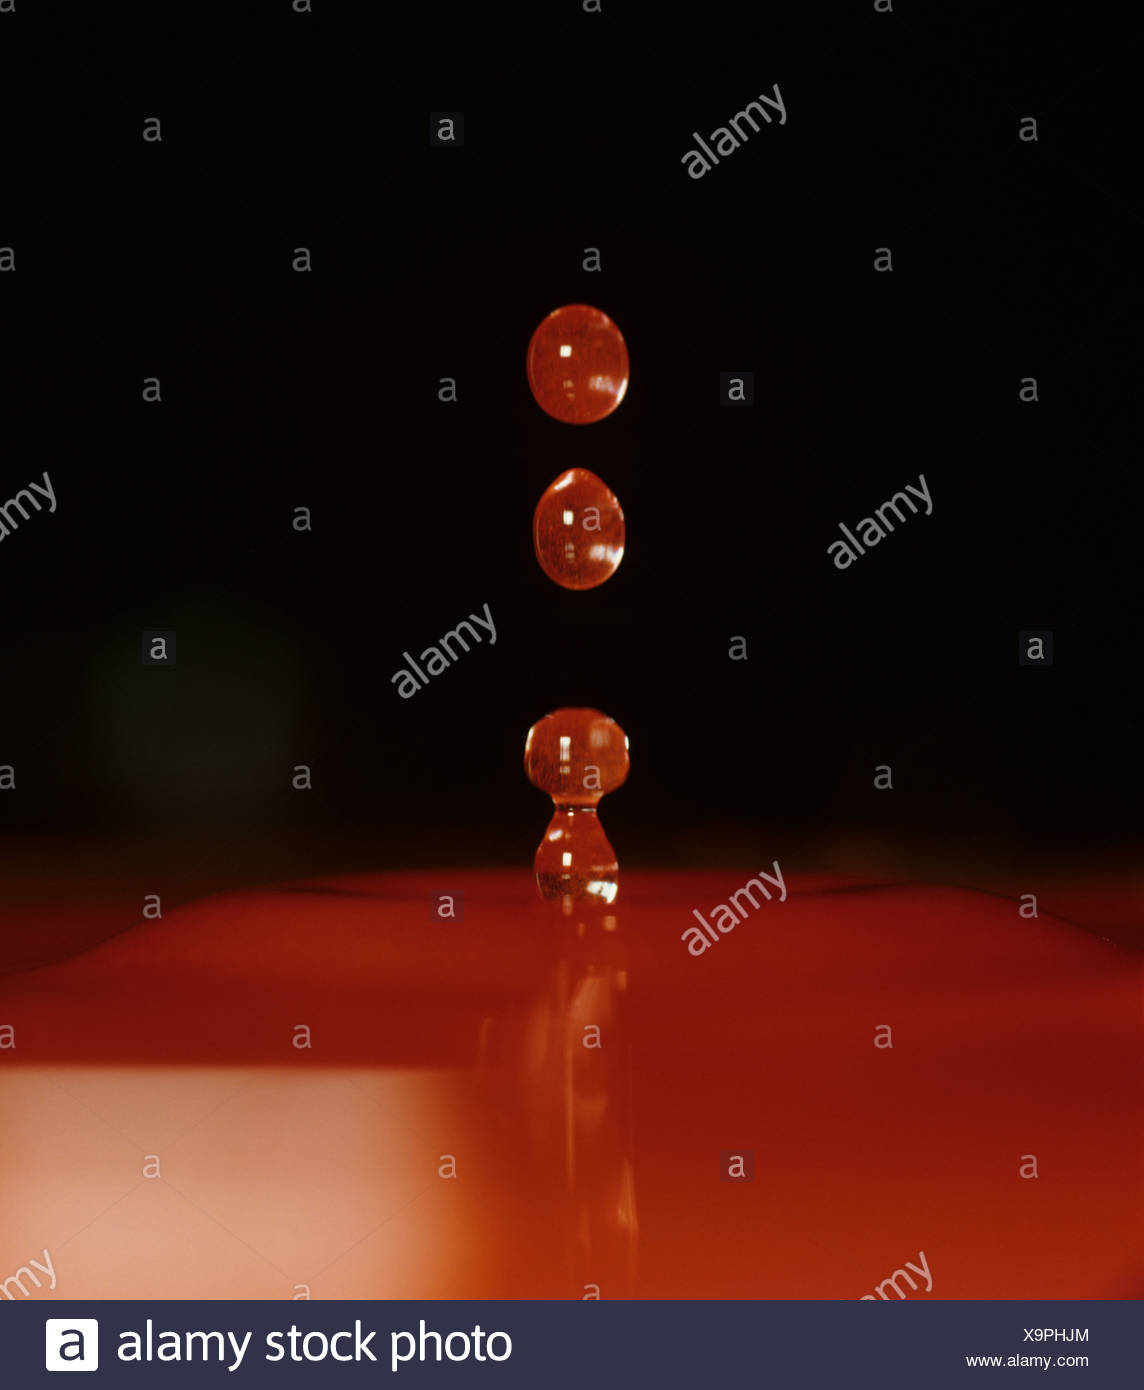 A column splash of red dyed water breaking up as it falls back - Stock Image